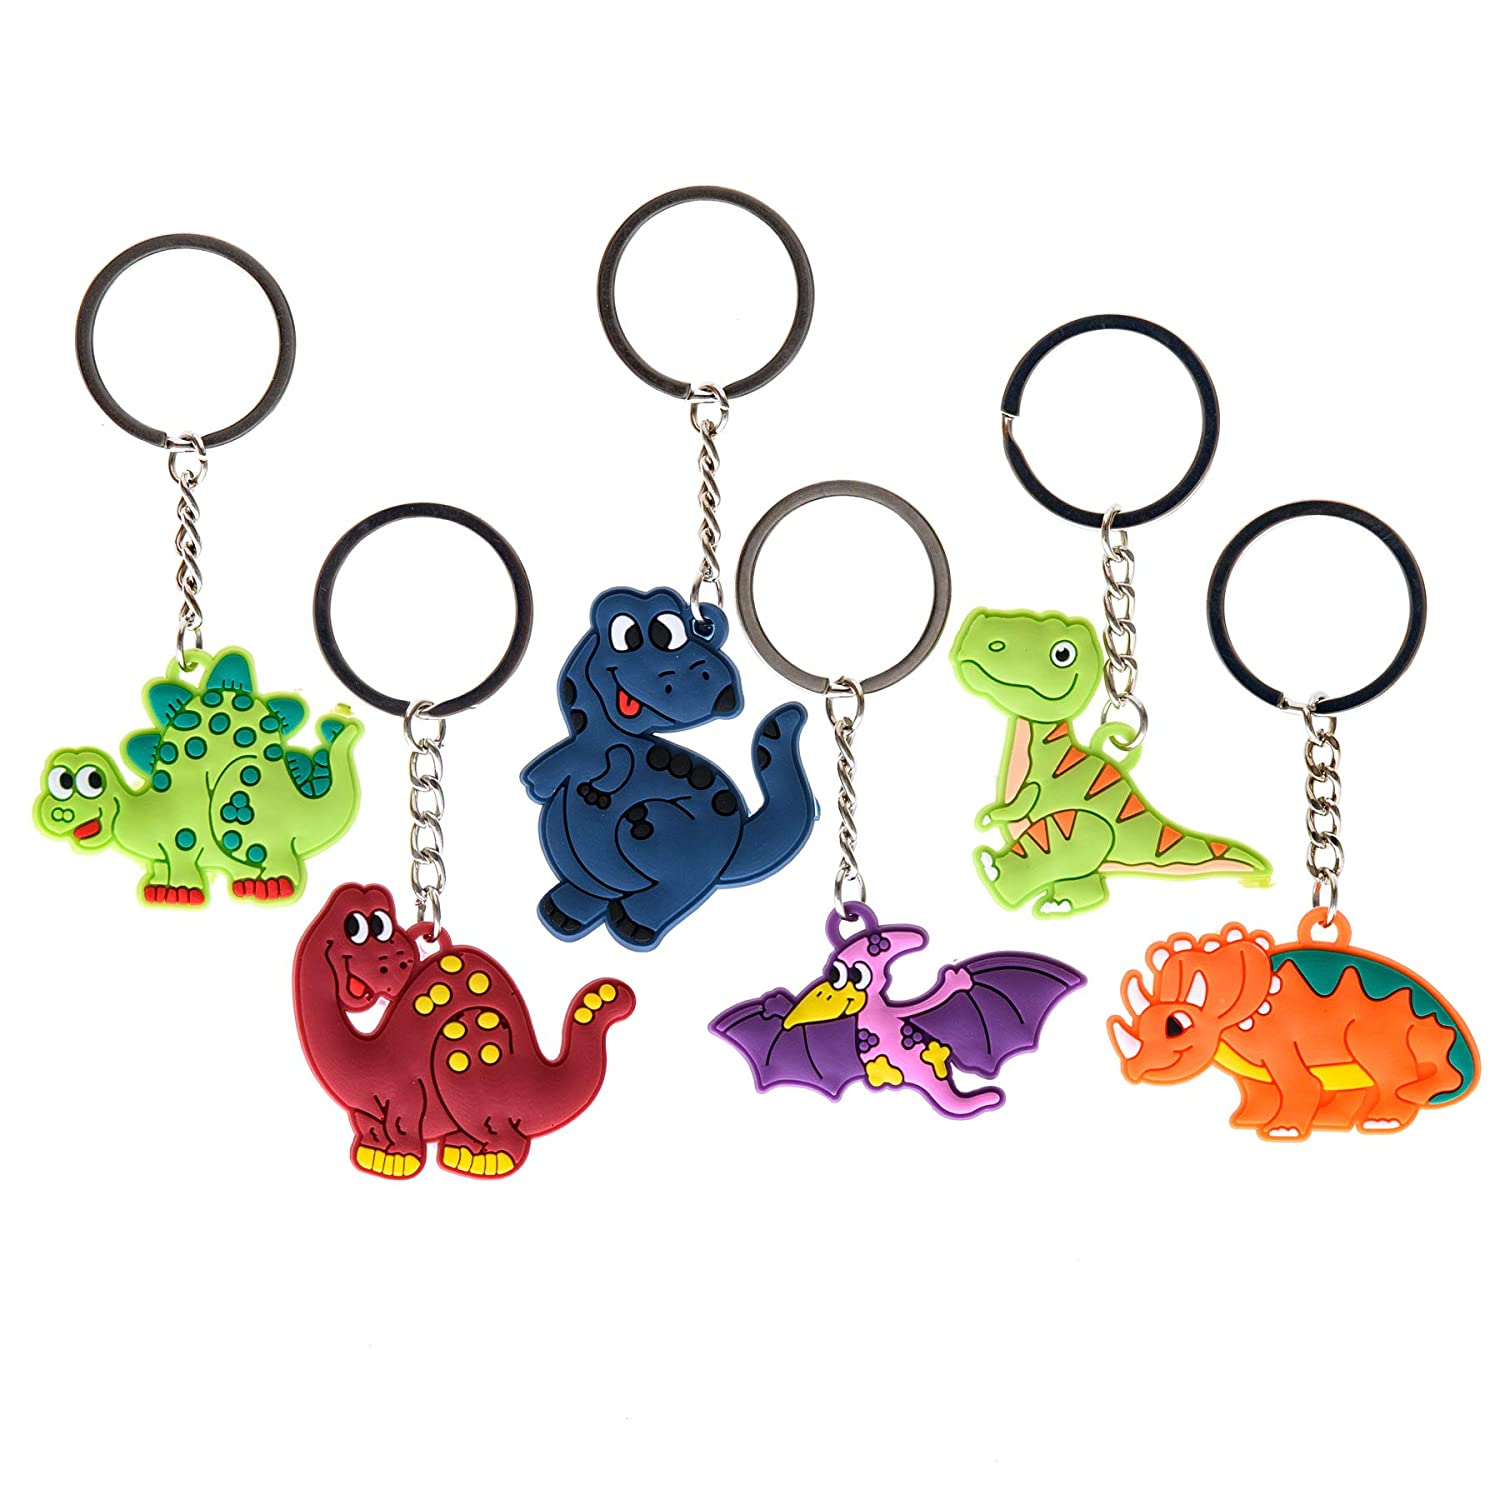 Keychains 60 Pieces Pens Glow In The Dark Dinos Dino Party Pack and Tattoo Sheets Dreams And Whispers Erasers